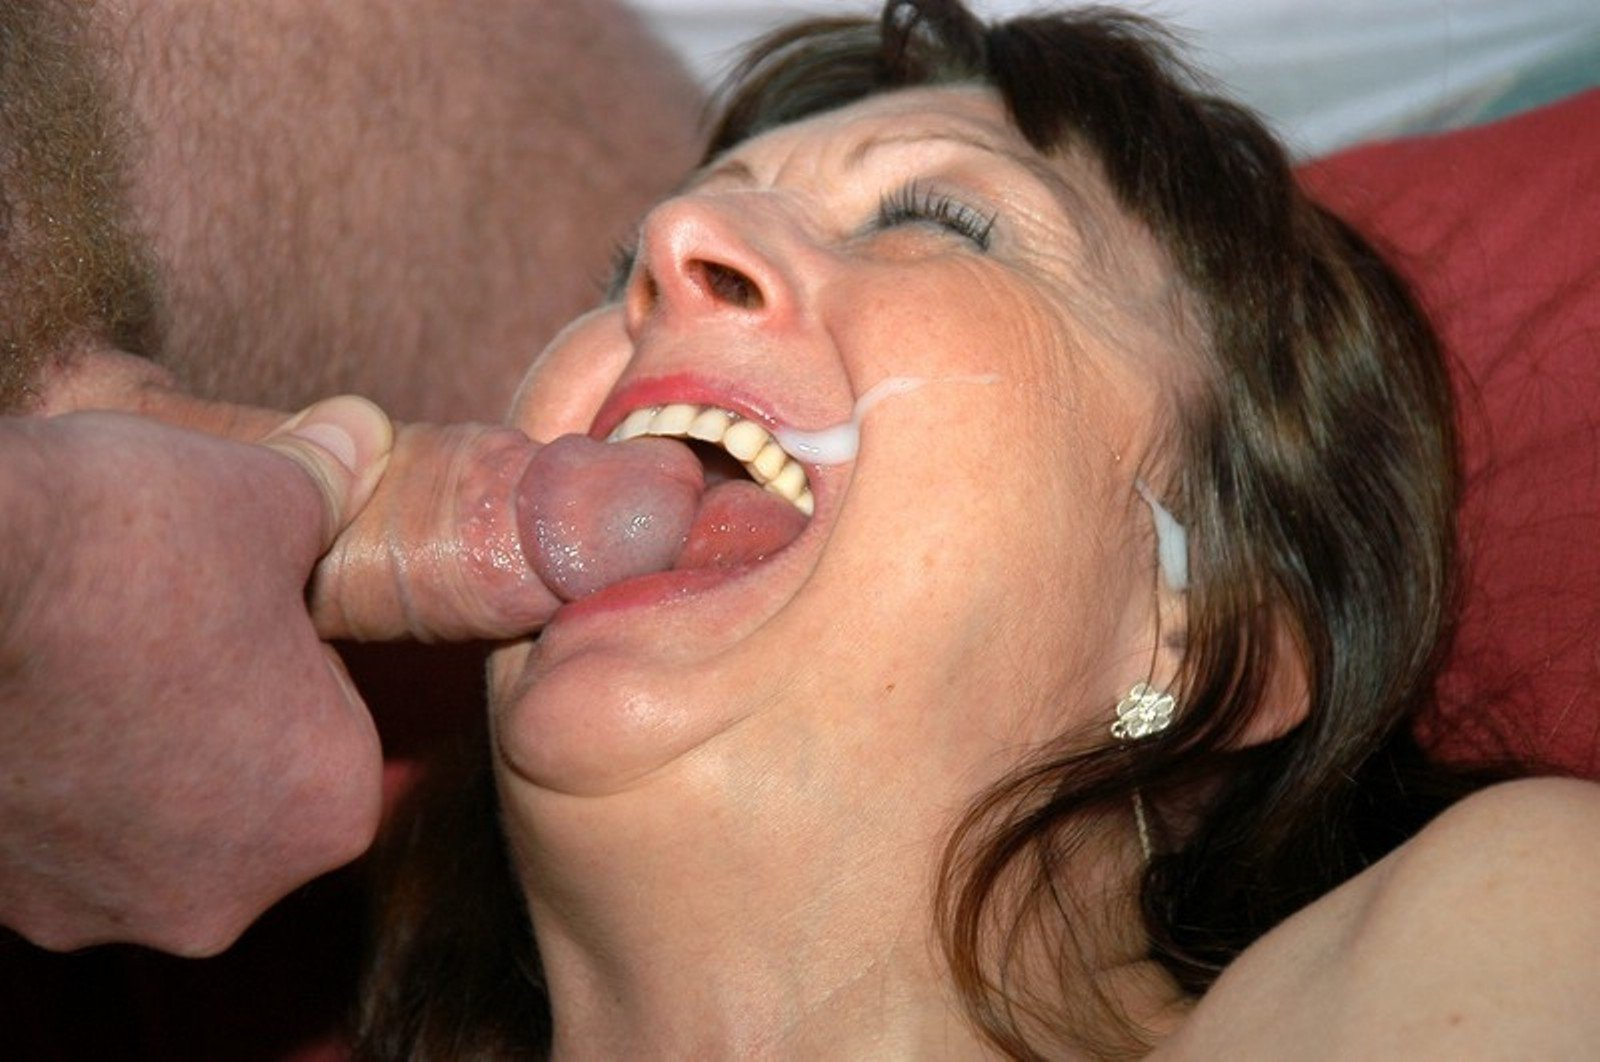 Dick in mouth pov sloppy drool on bbc white bbw cock worship free porn images